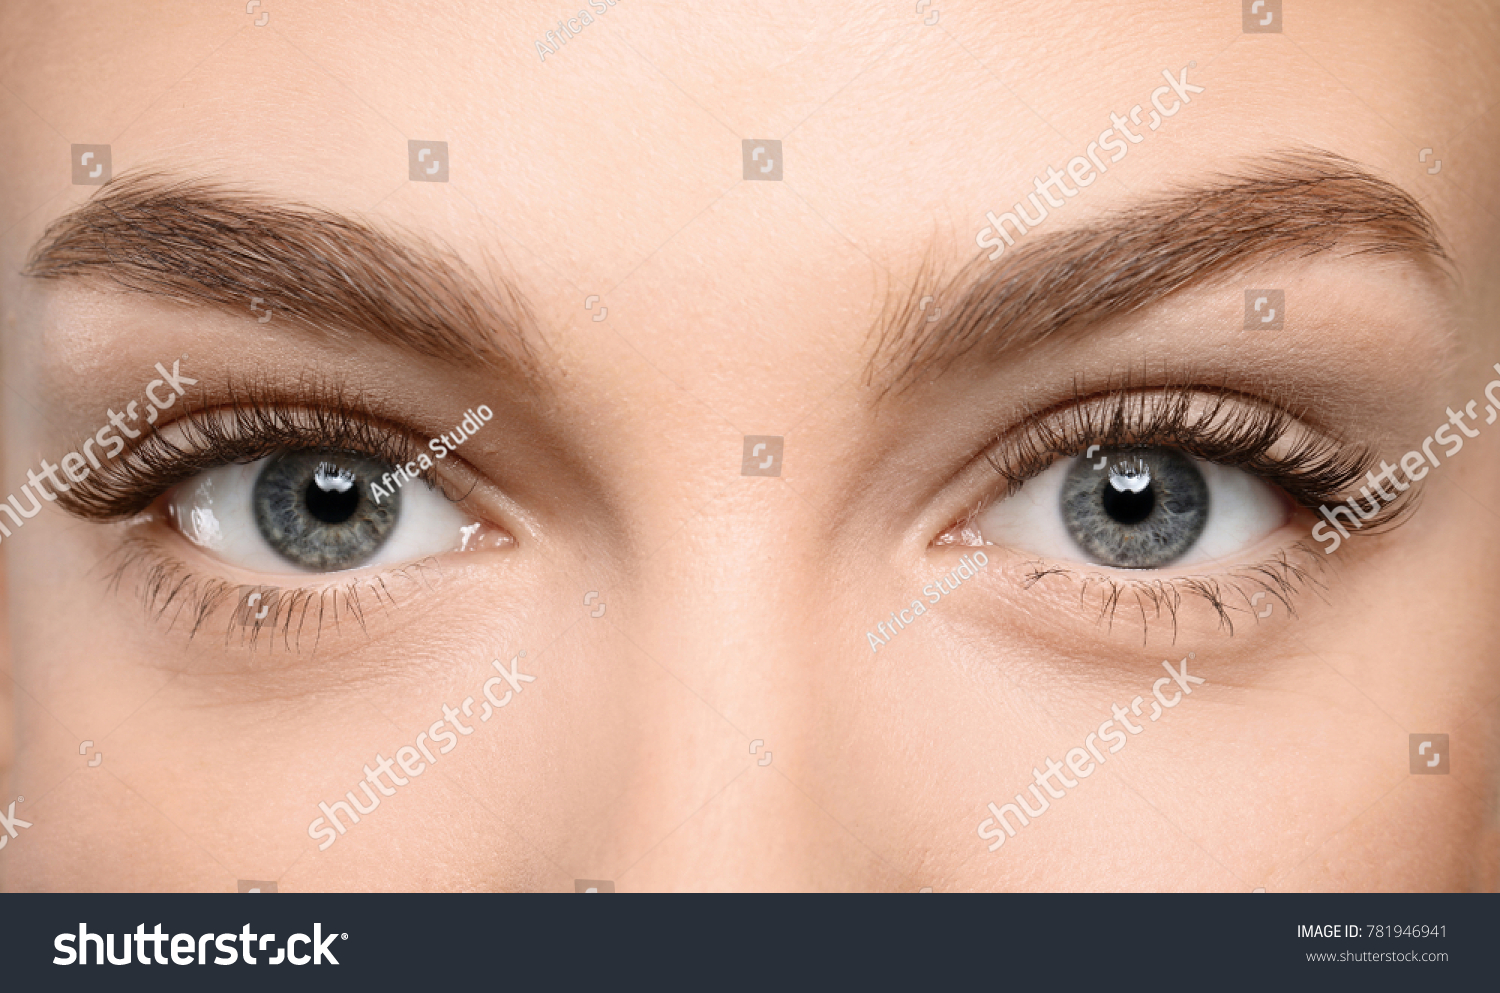 Beautiful female eyes with long eyelashes, closeup #781946941 - 123PhotoFree.com